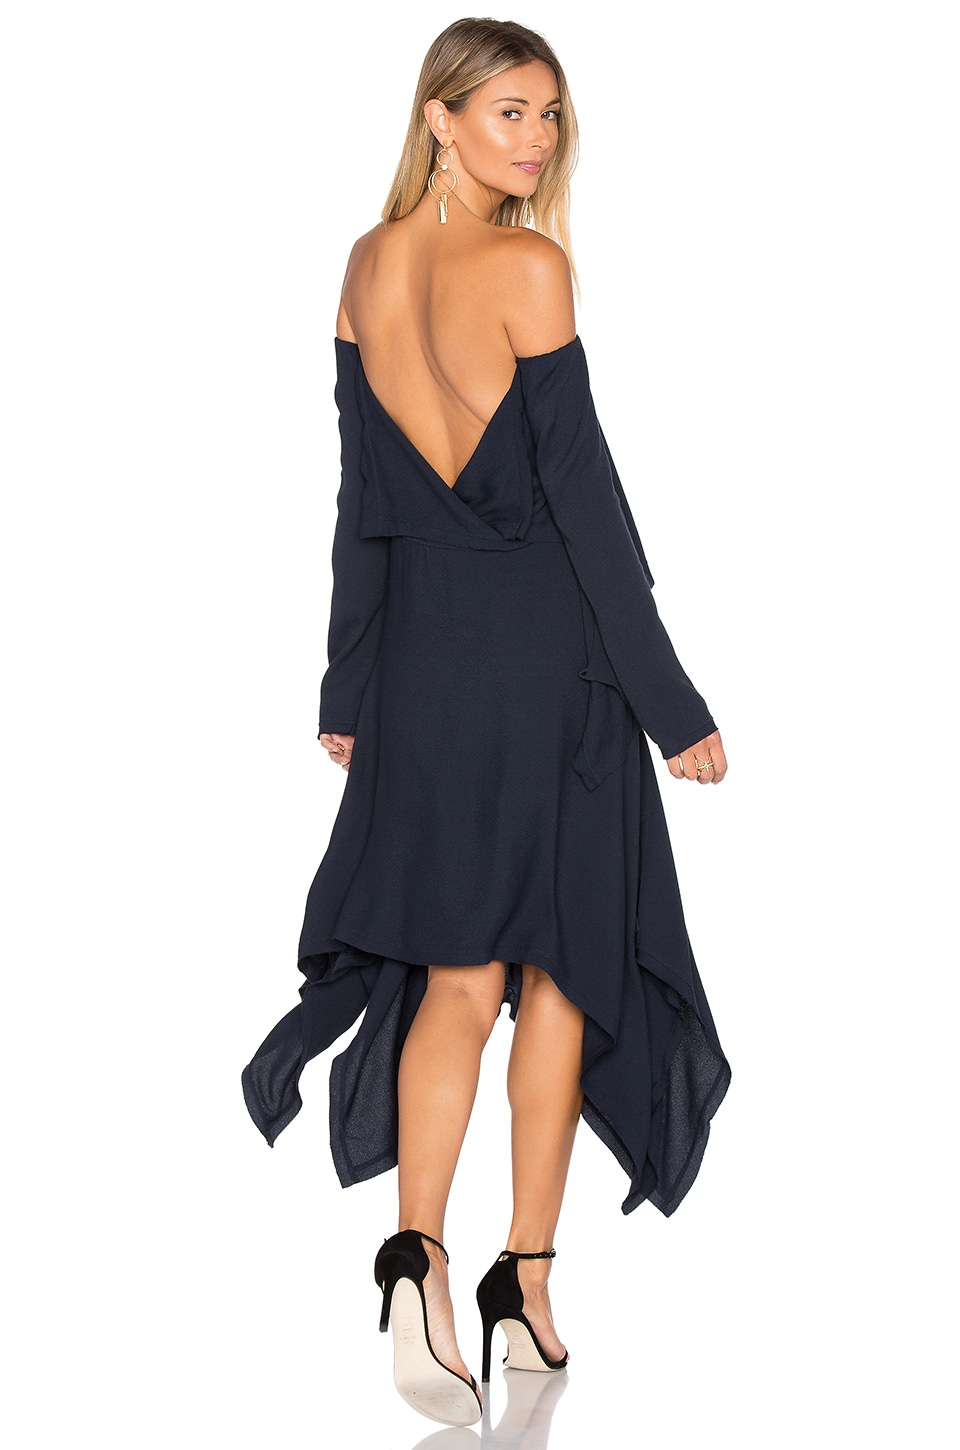 Off Shoulder Backless Dress by KITX